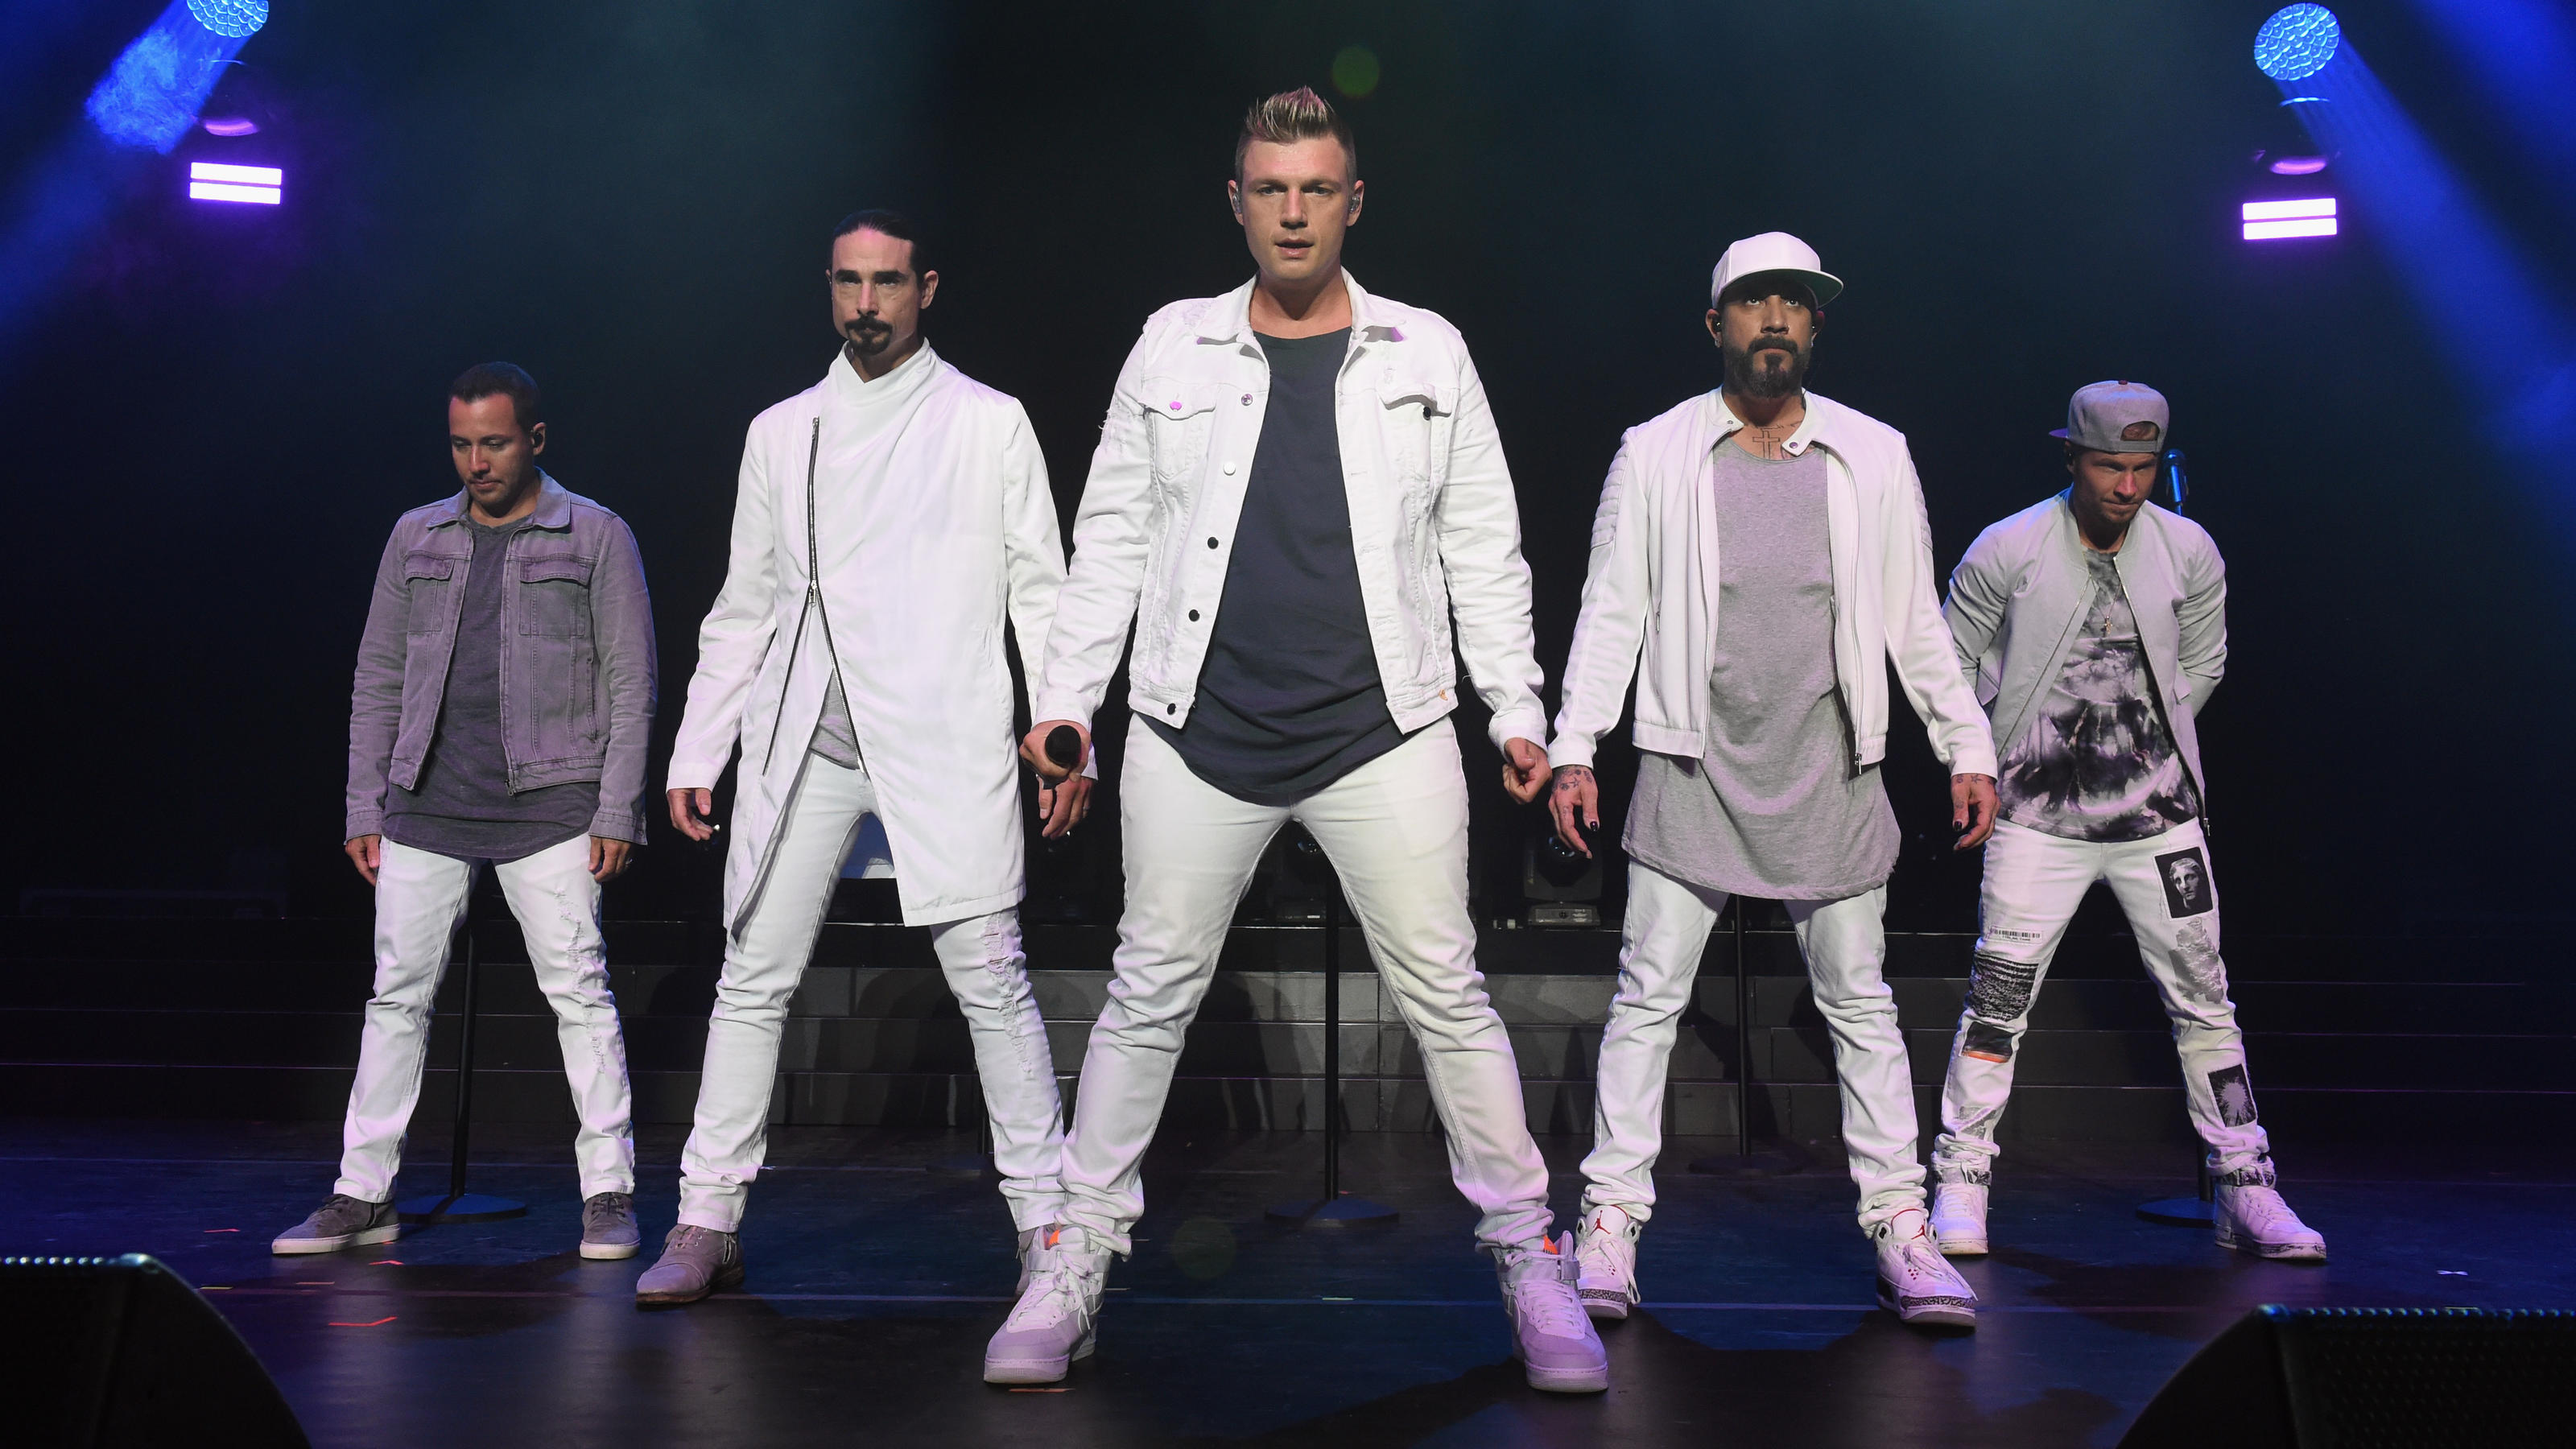 Find all tickets for all Backstreet Boys upcoming shows Discover Backstreet Boys concert details and information Explore Backstreet Boys photos videos and more